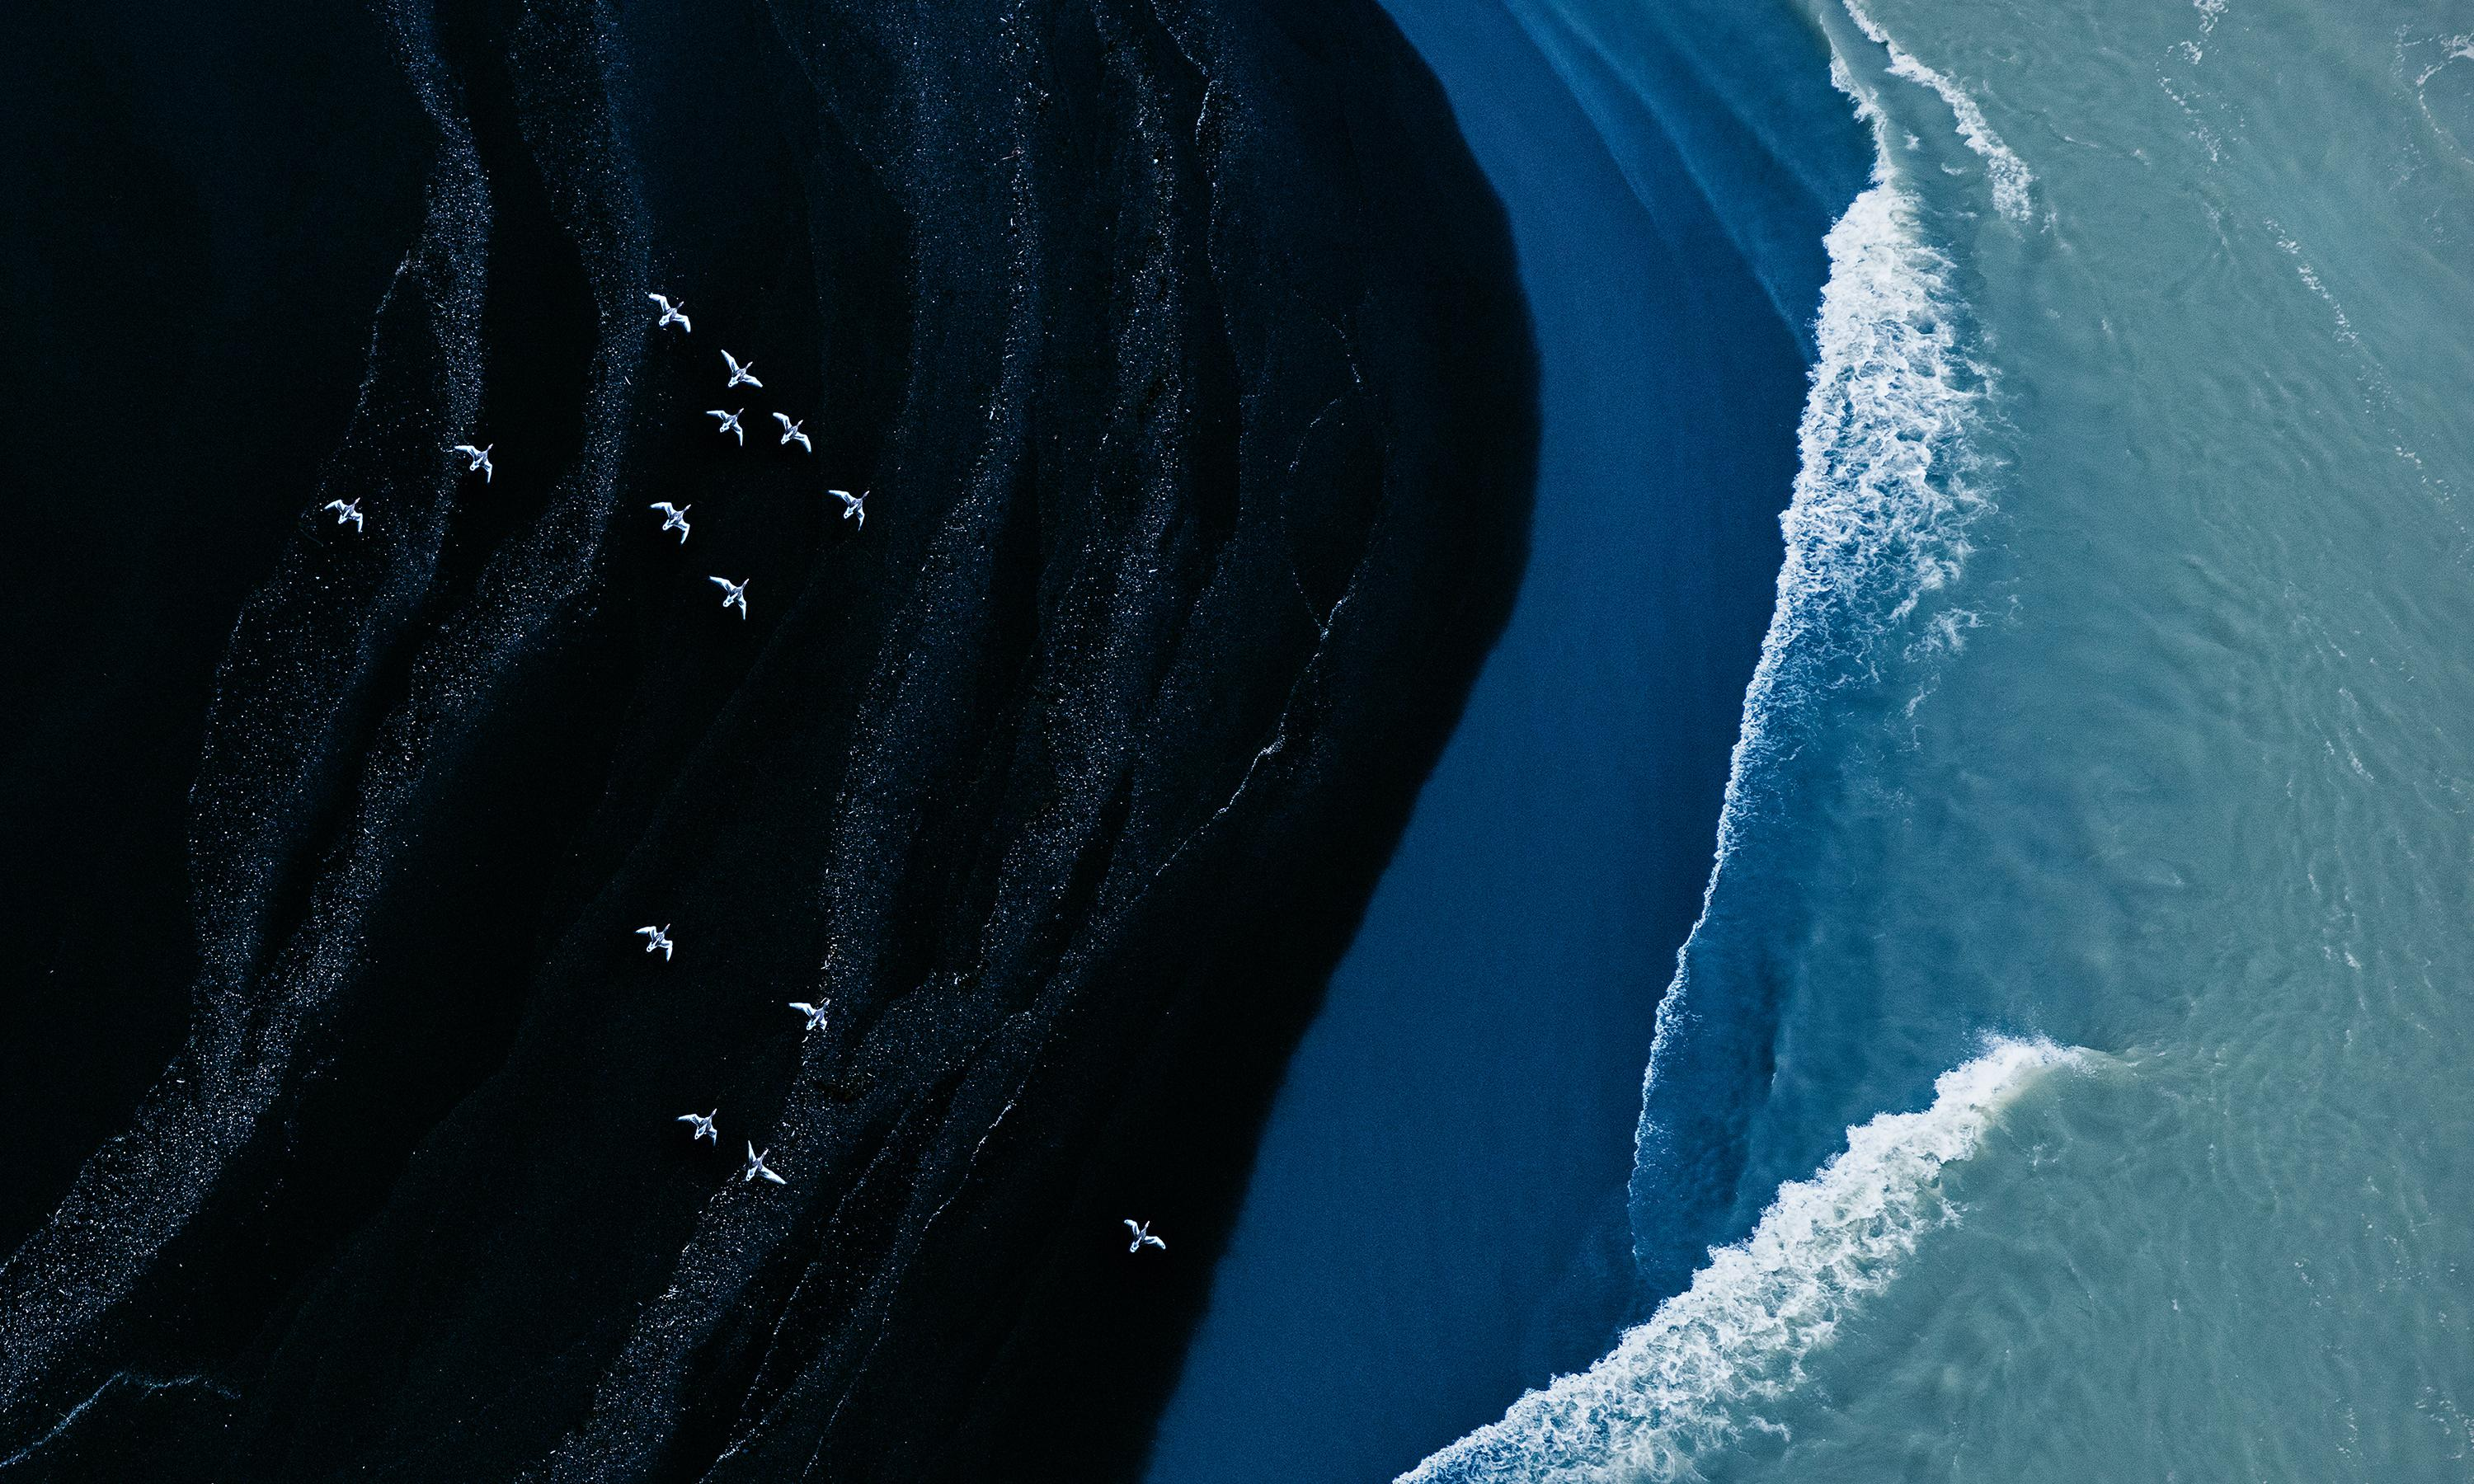 Zack Seckler's best photograph: wild Iceland from the air